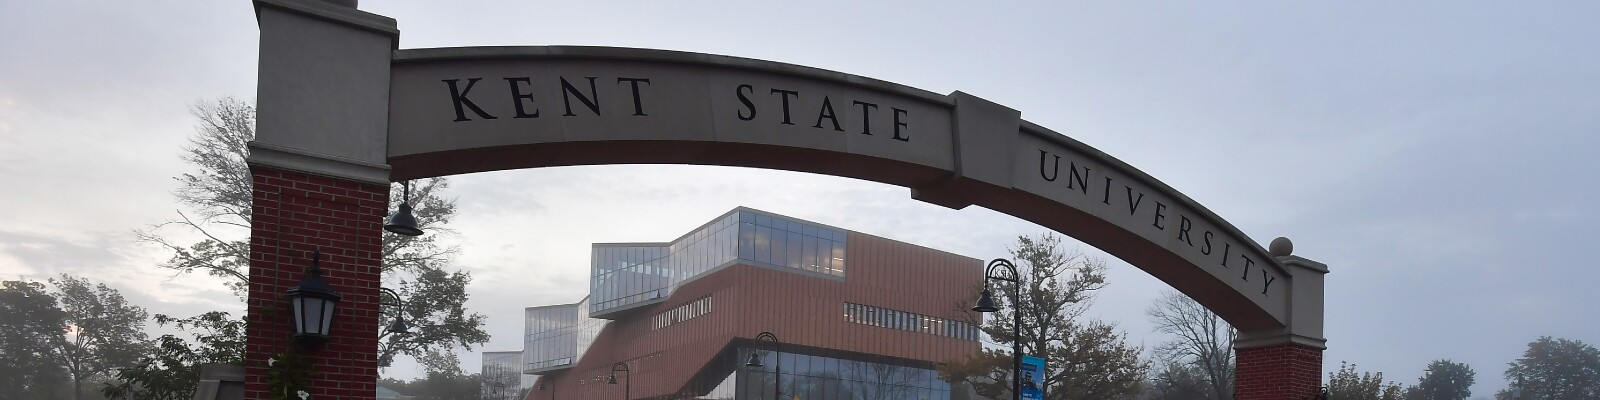 View of the Kent State University archway on campus